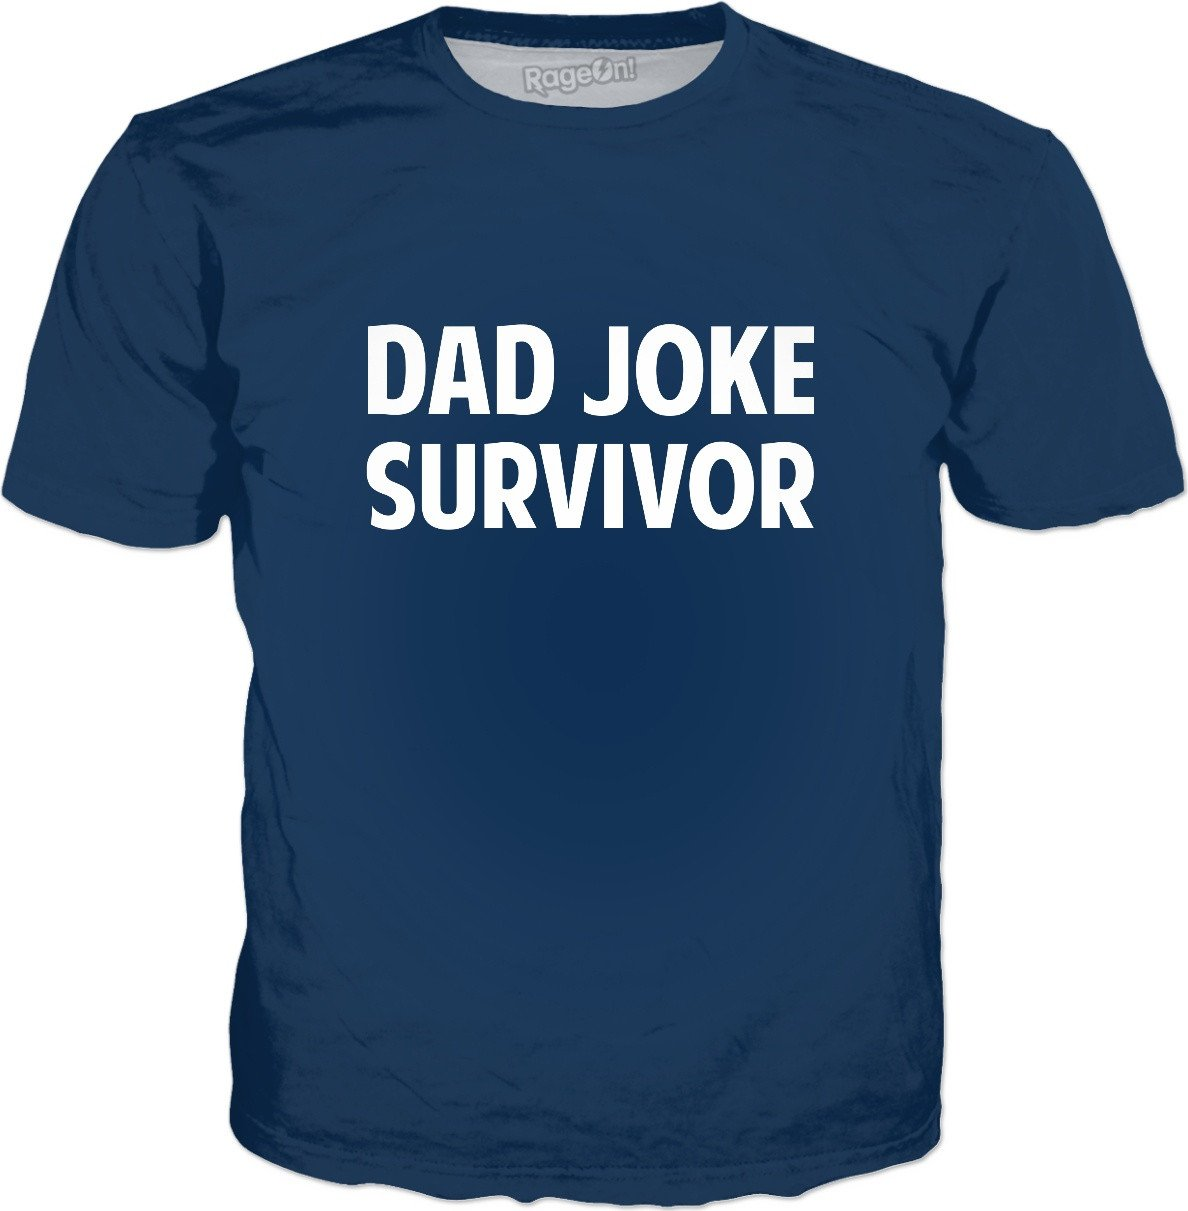 Dad Joke Survivor T-Shirt